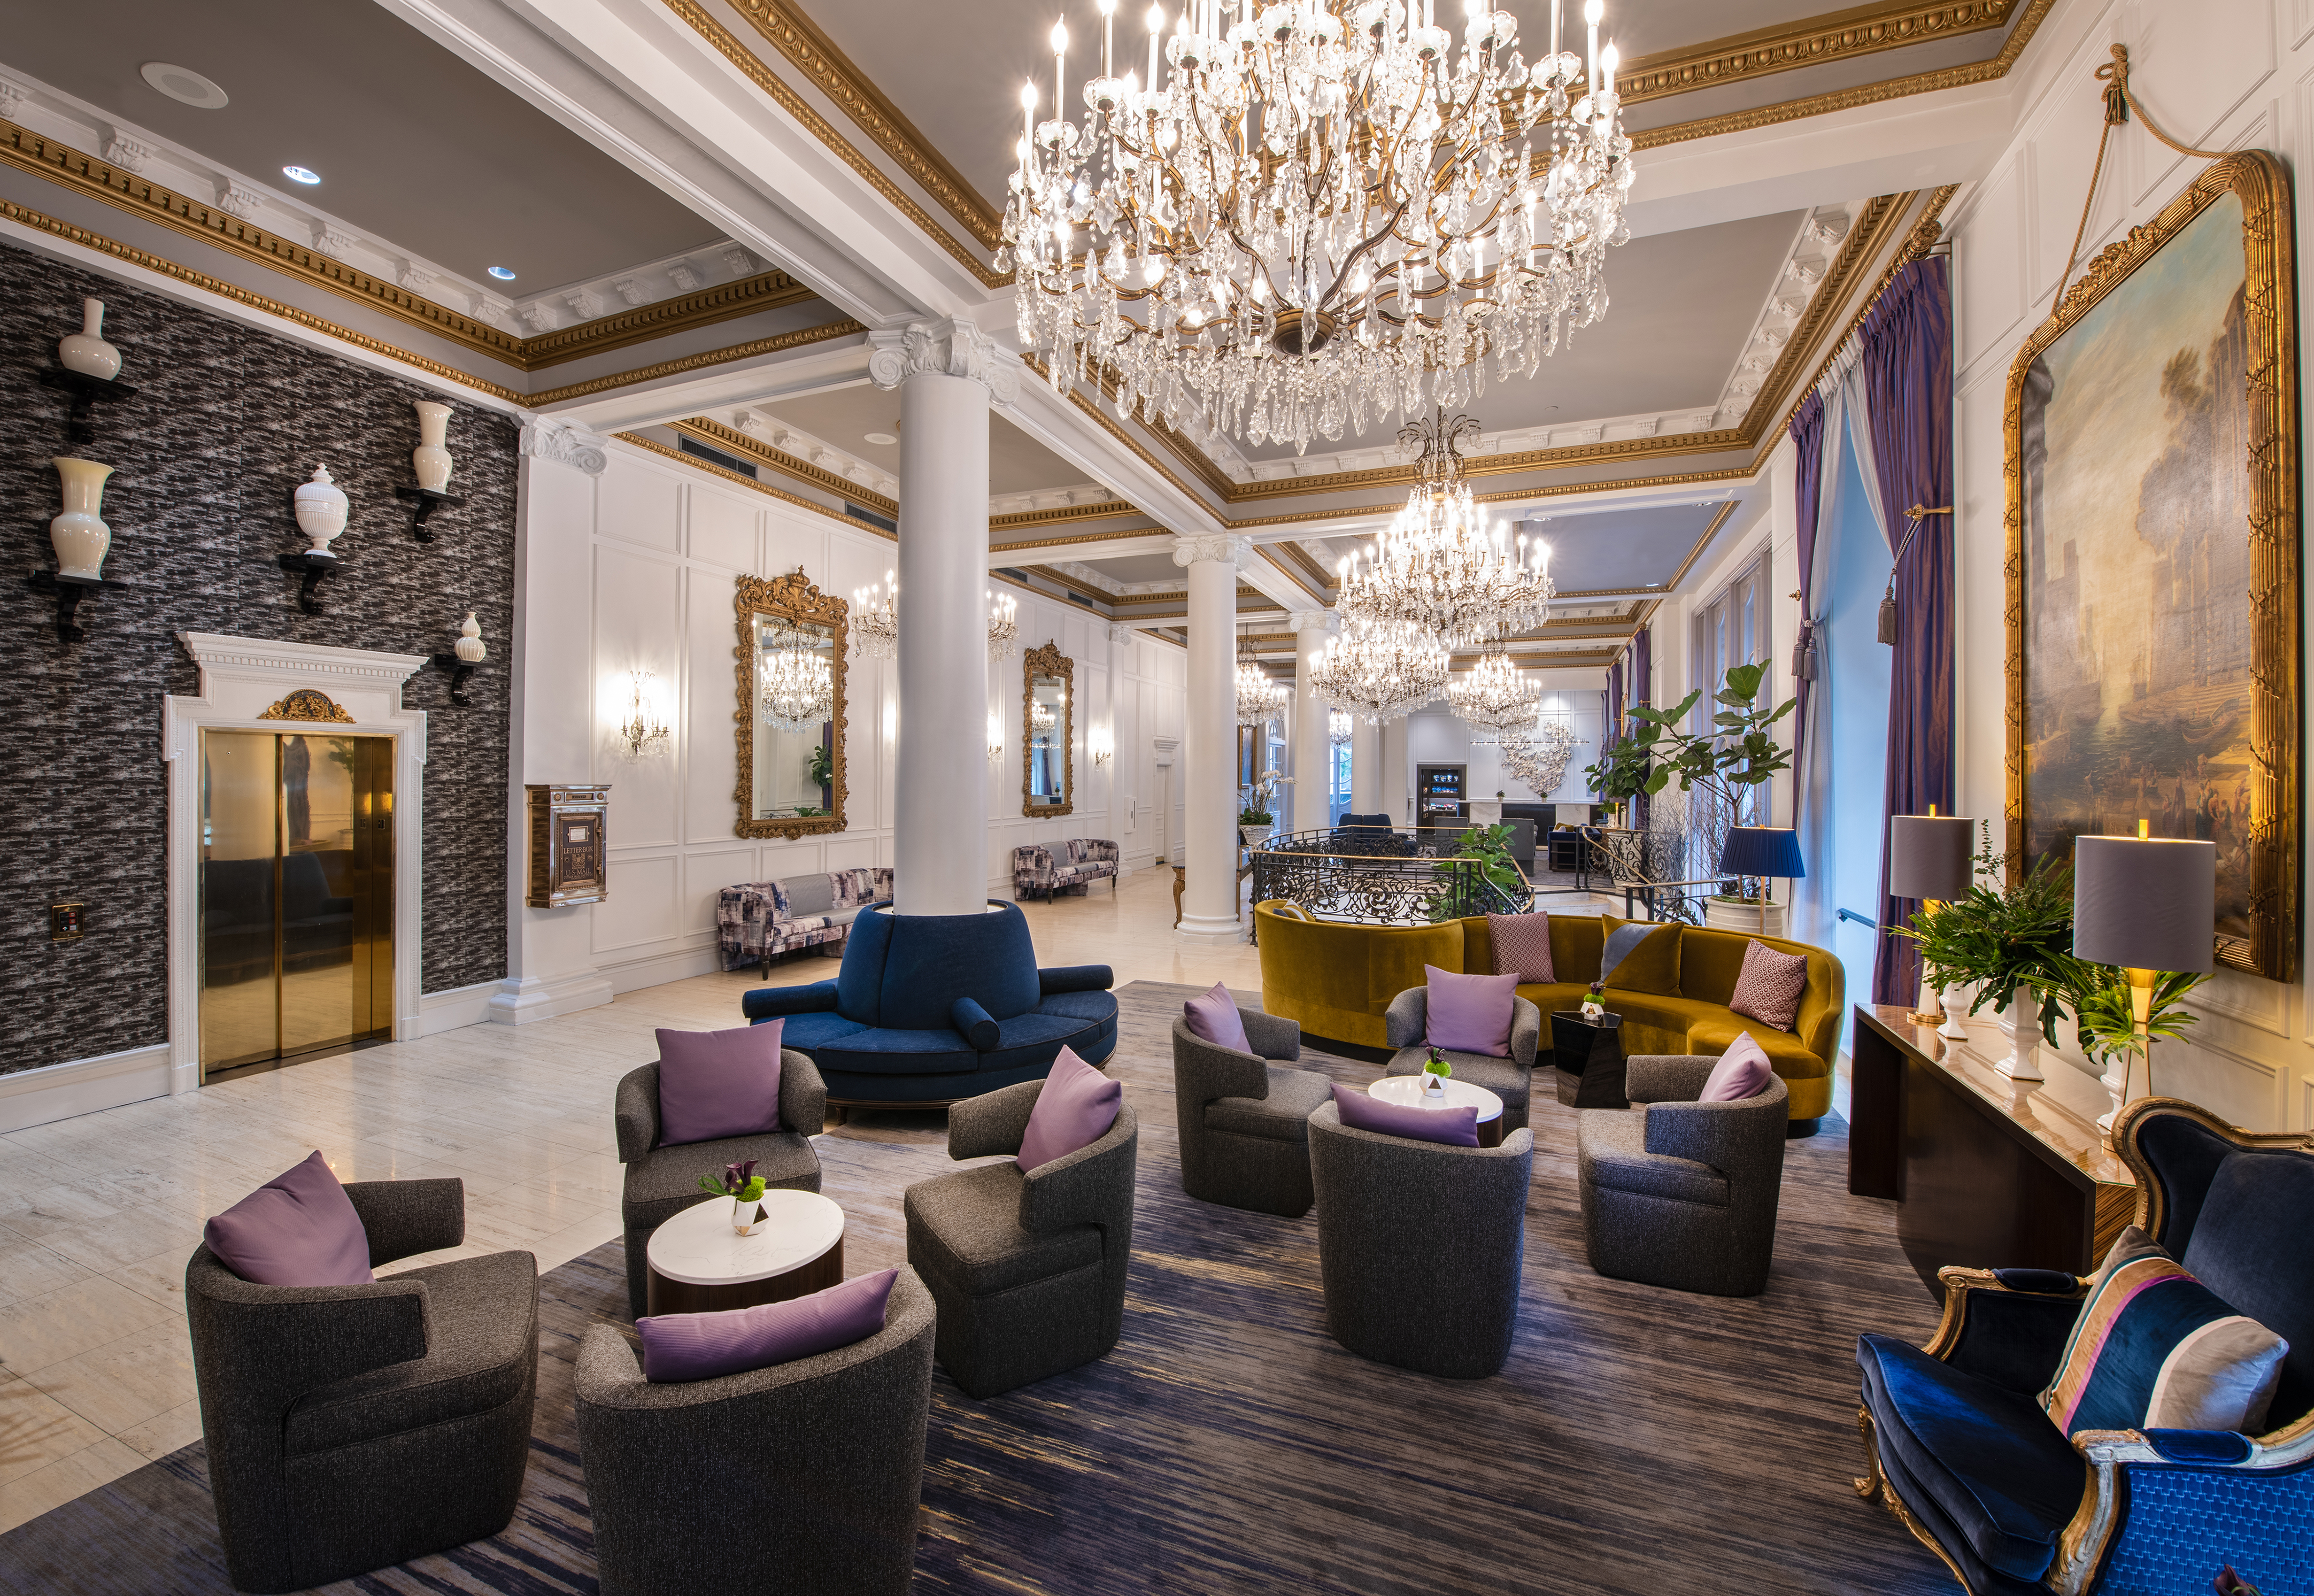 The Best New Orleans Hotels to Book for Mardi Gras 2019 ...